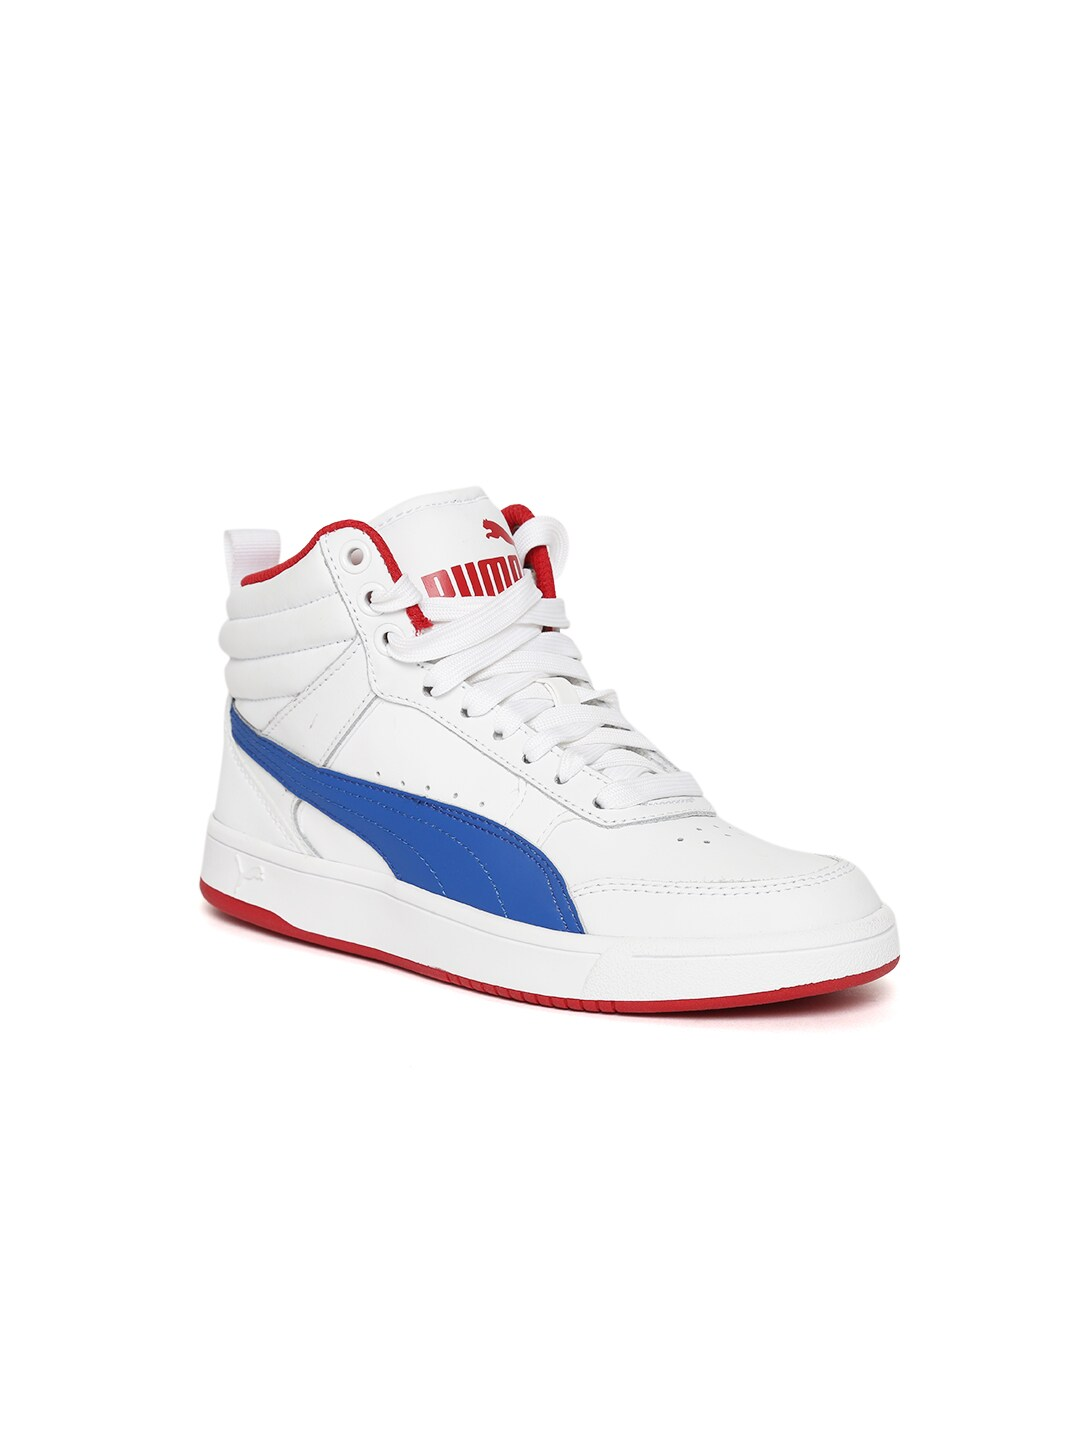 568c32fe602a Puma White And Green Casual Shoes - Buy Puma White And Green Casual Shoes  online in India